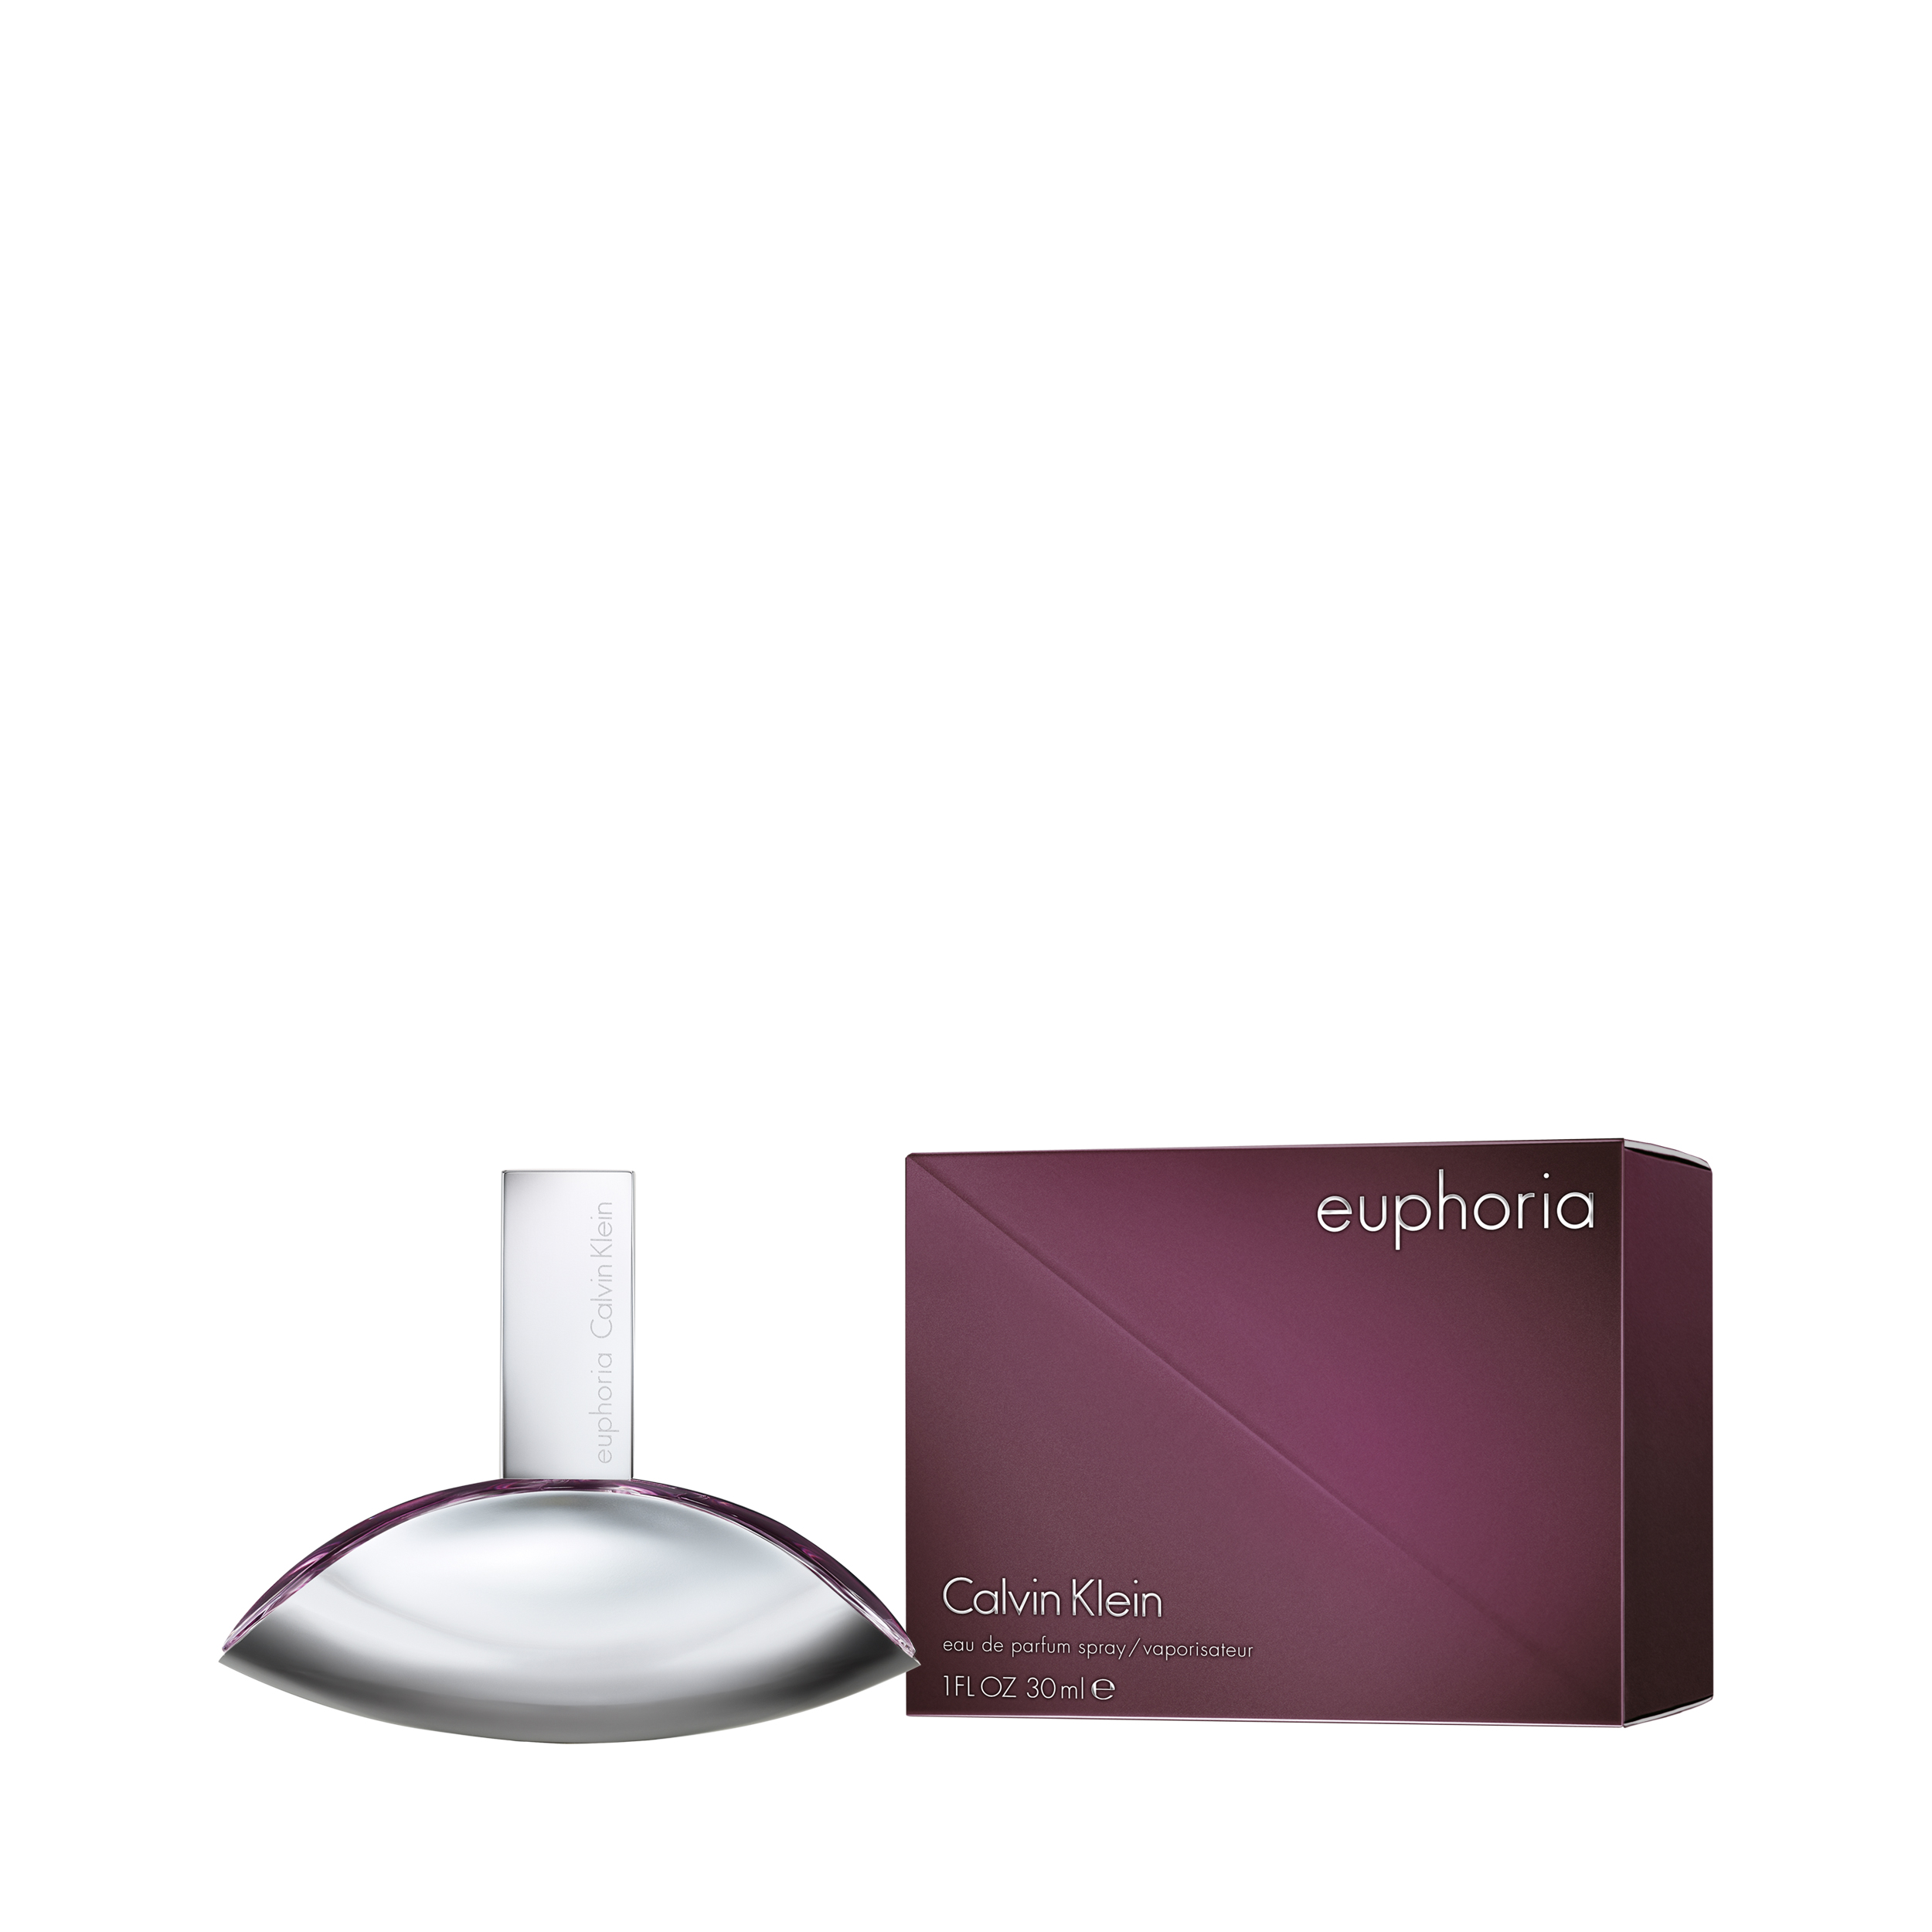 CK EUPHORIA WOMAN EDP 30ML